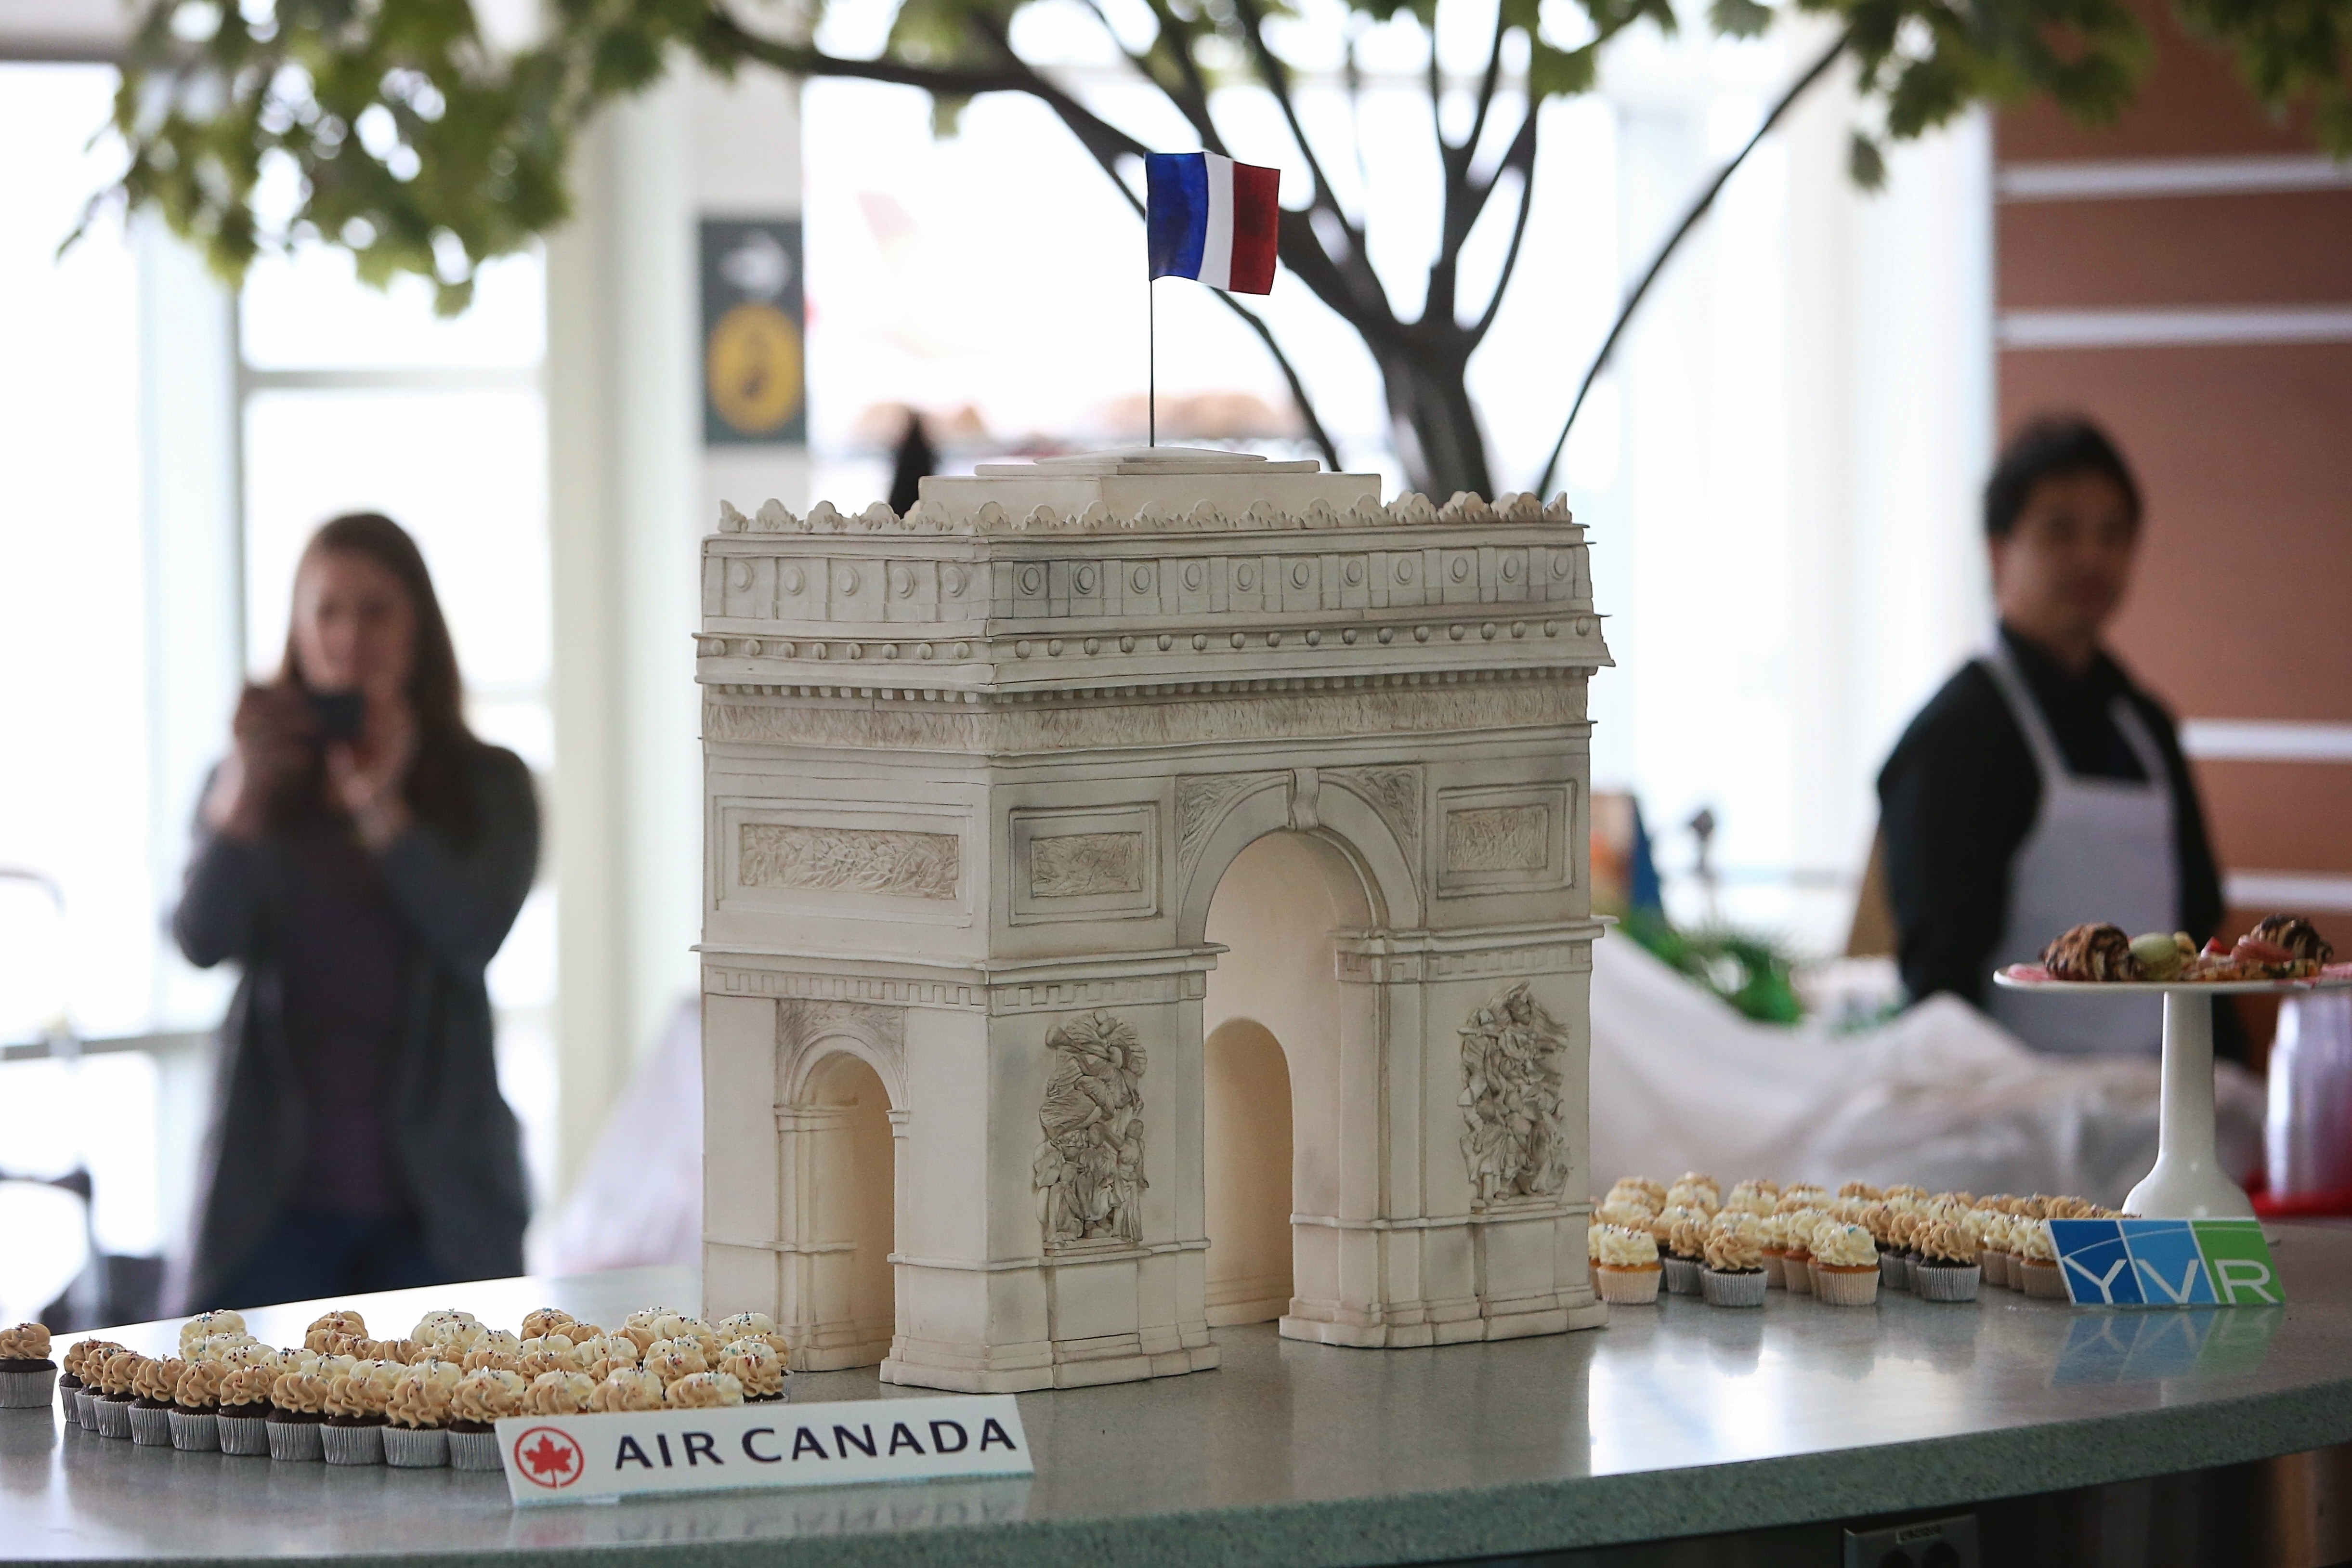 Cake in the shape of the Arc de Triomphe